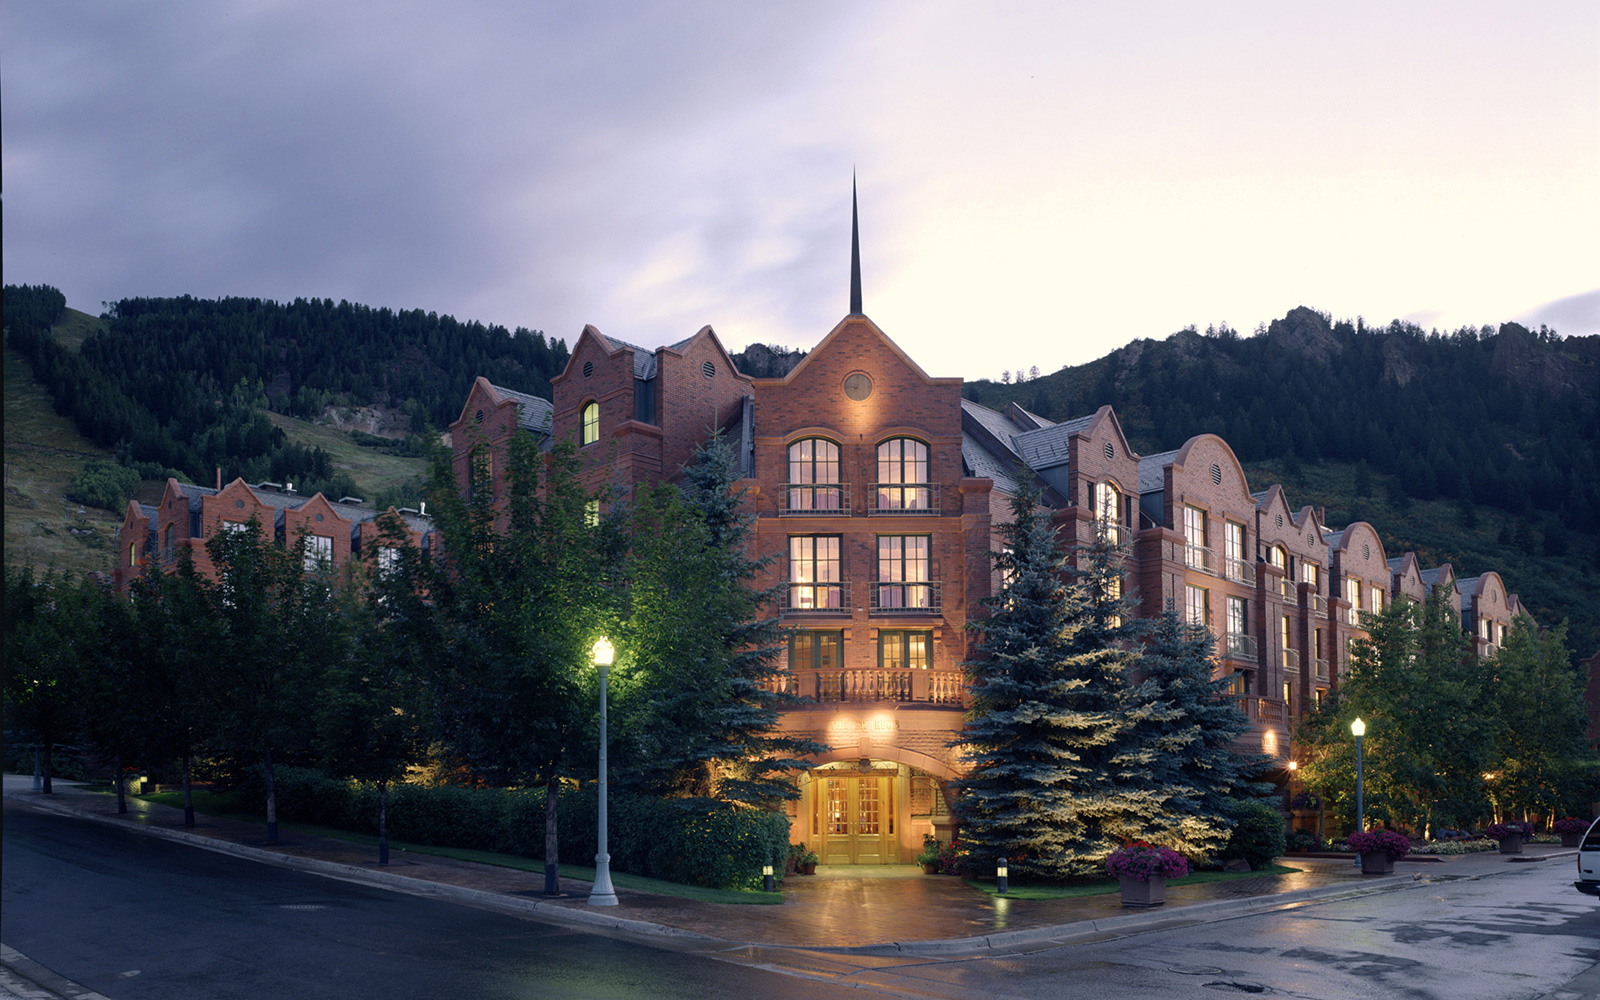 No. 11 St. Regis, Aspen, Colorado